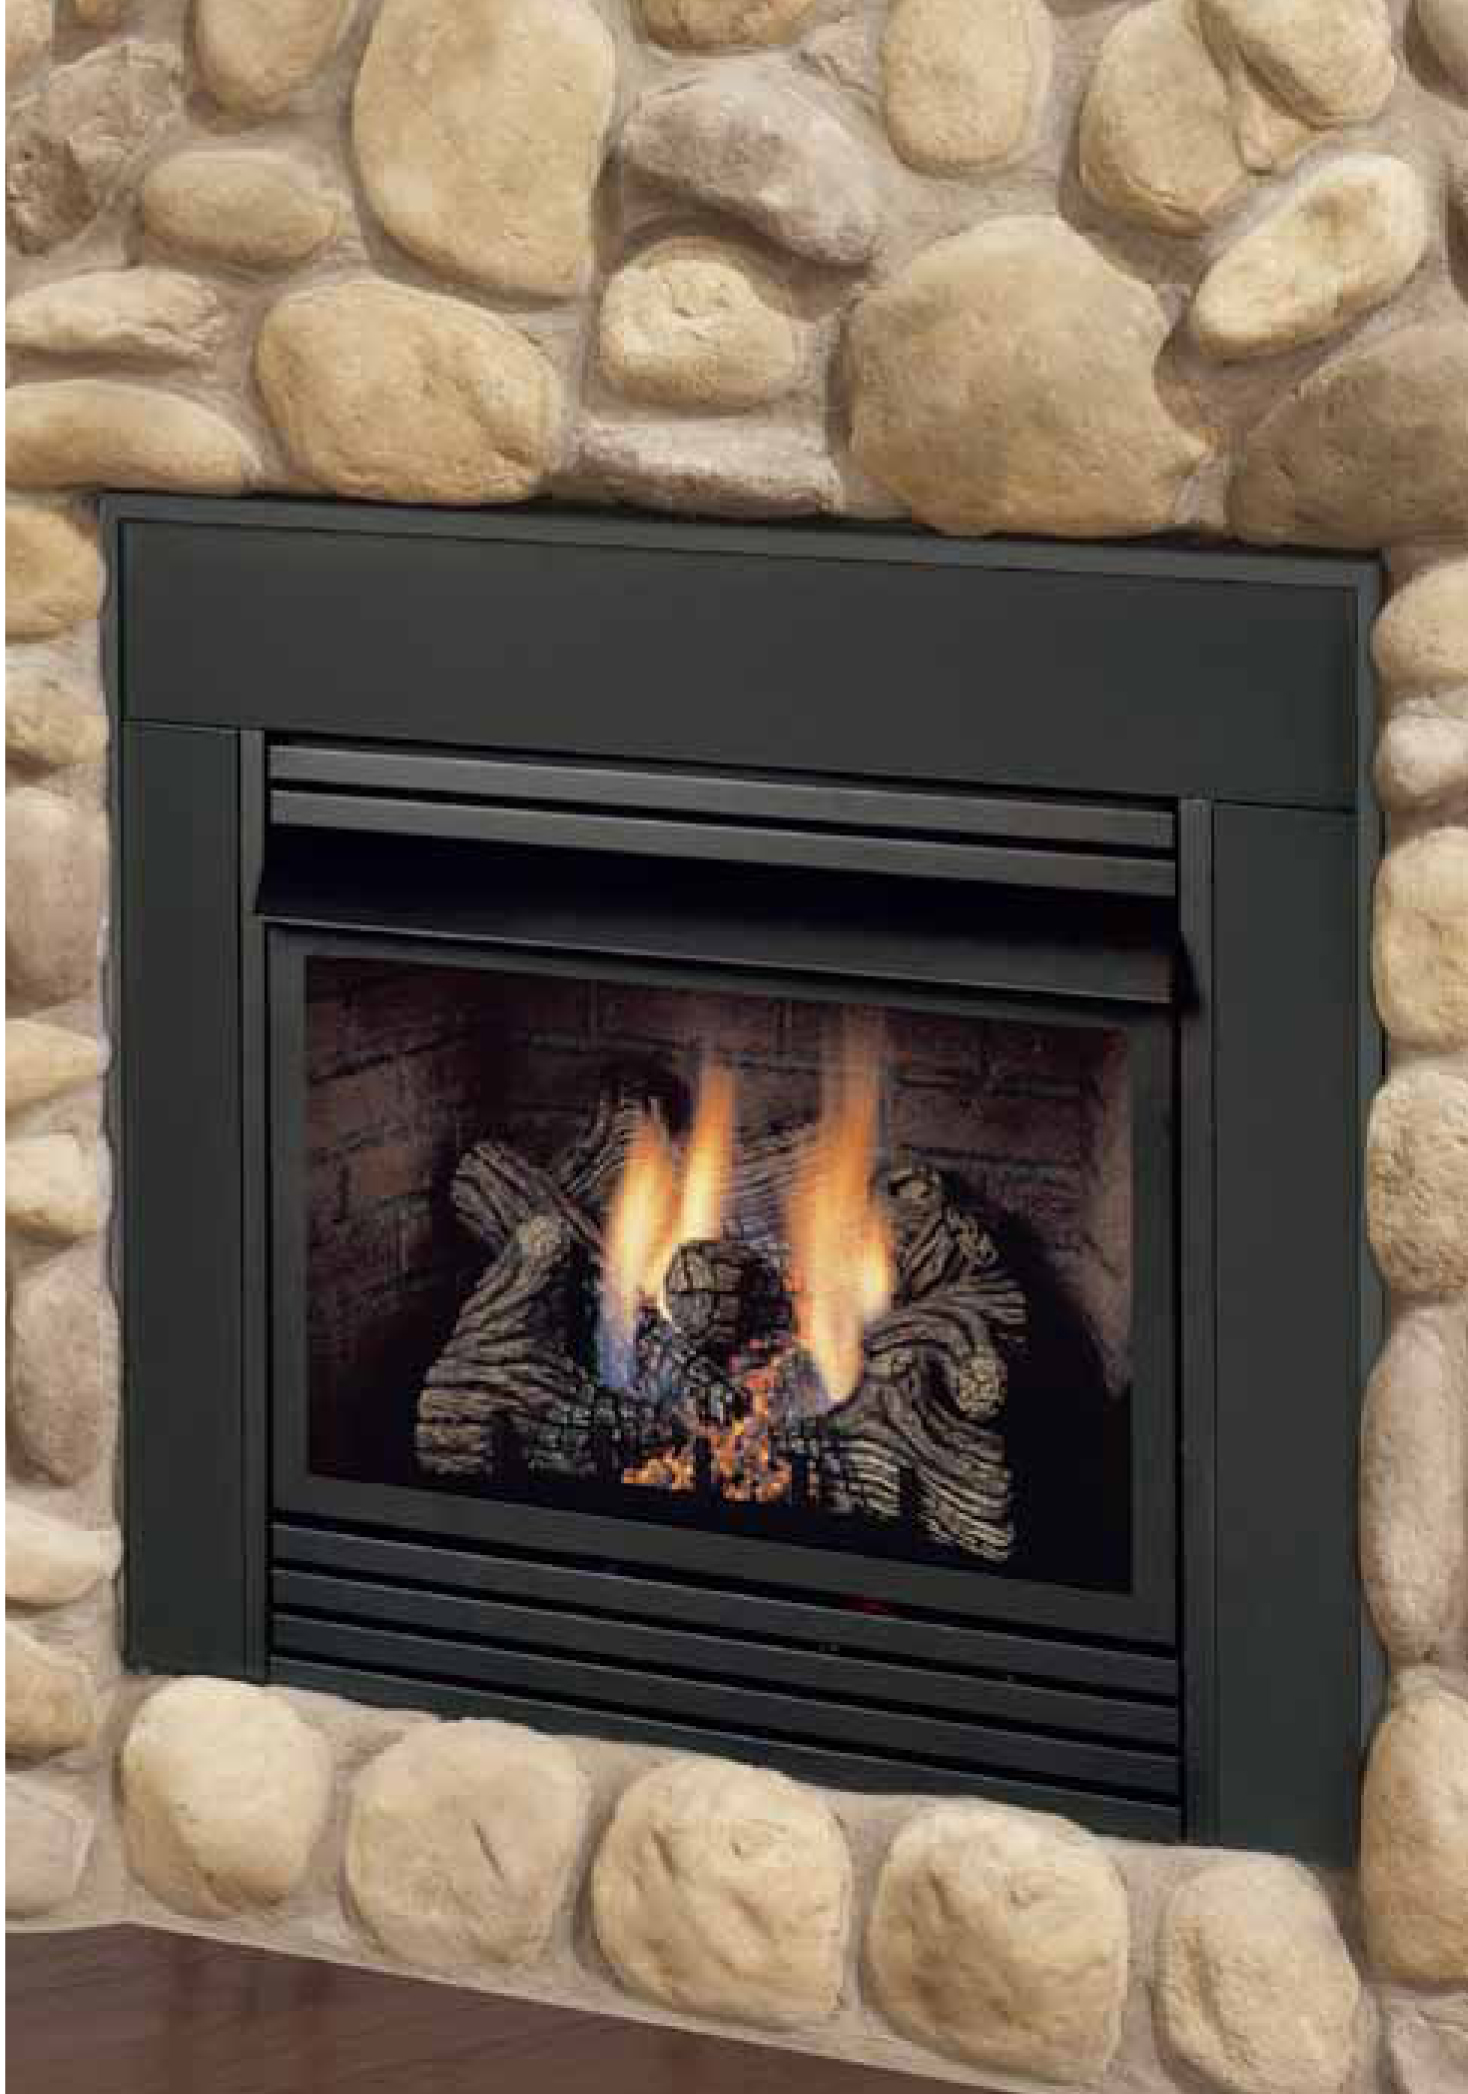 propane gas log fireplace. Direct Vent Fireplace Inserts  image jpeg Recreational Warehouse Ventless Logs Fireplaces